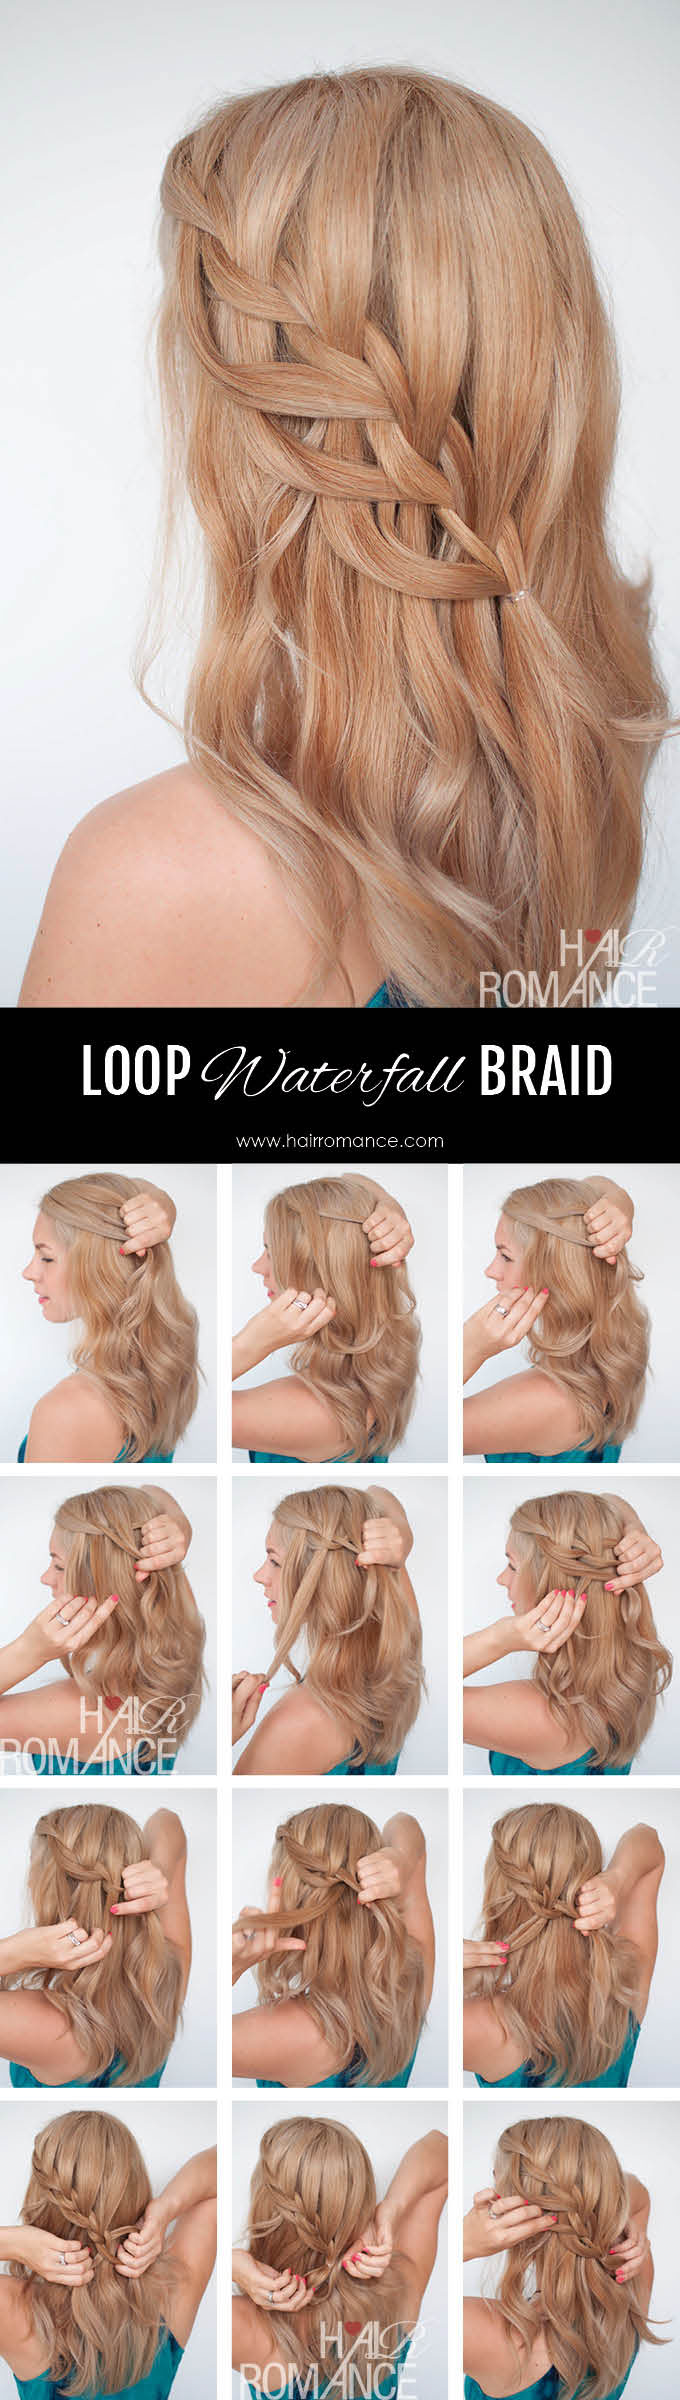 Hair Romance - Loop waterfall braid tutorial